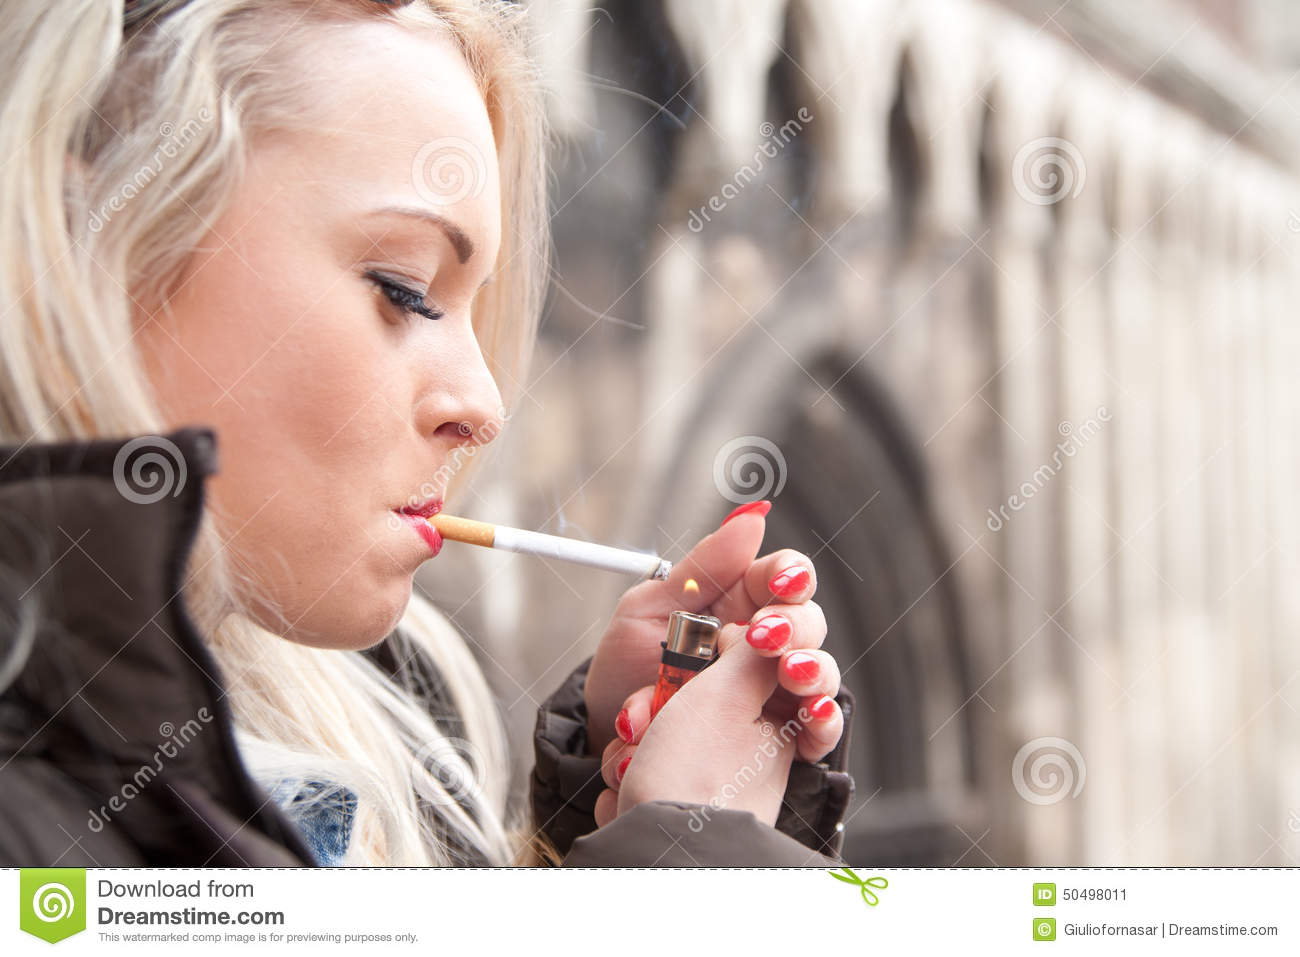 https://thumbs.dreamstime.com/z/tourist-lighting-up-cigarette-european-city-girl-50498011.jpg